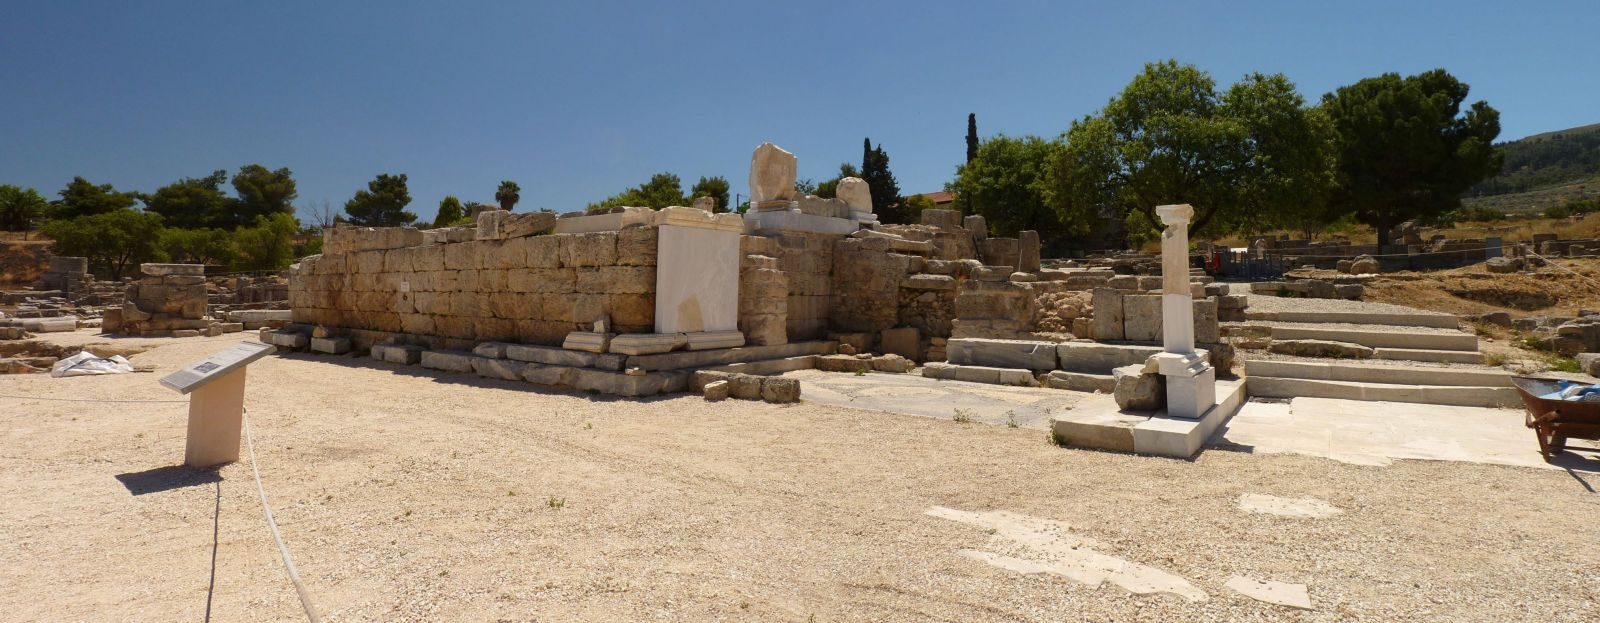 ancient corinth essay Present and past cultures have many similarities one similarity comes to mind that stands above them all i'm referring to the comparison of today's stock market to the exchange of goods within the ancient cities of greece, in particular, the city of corinth.